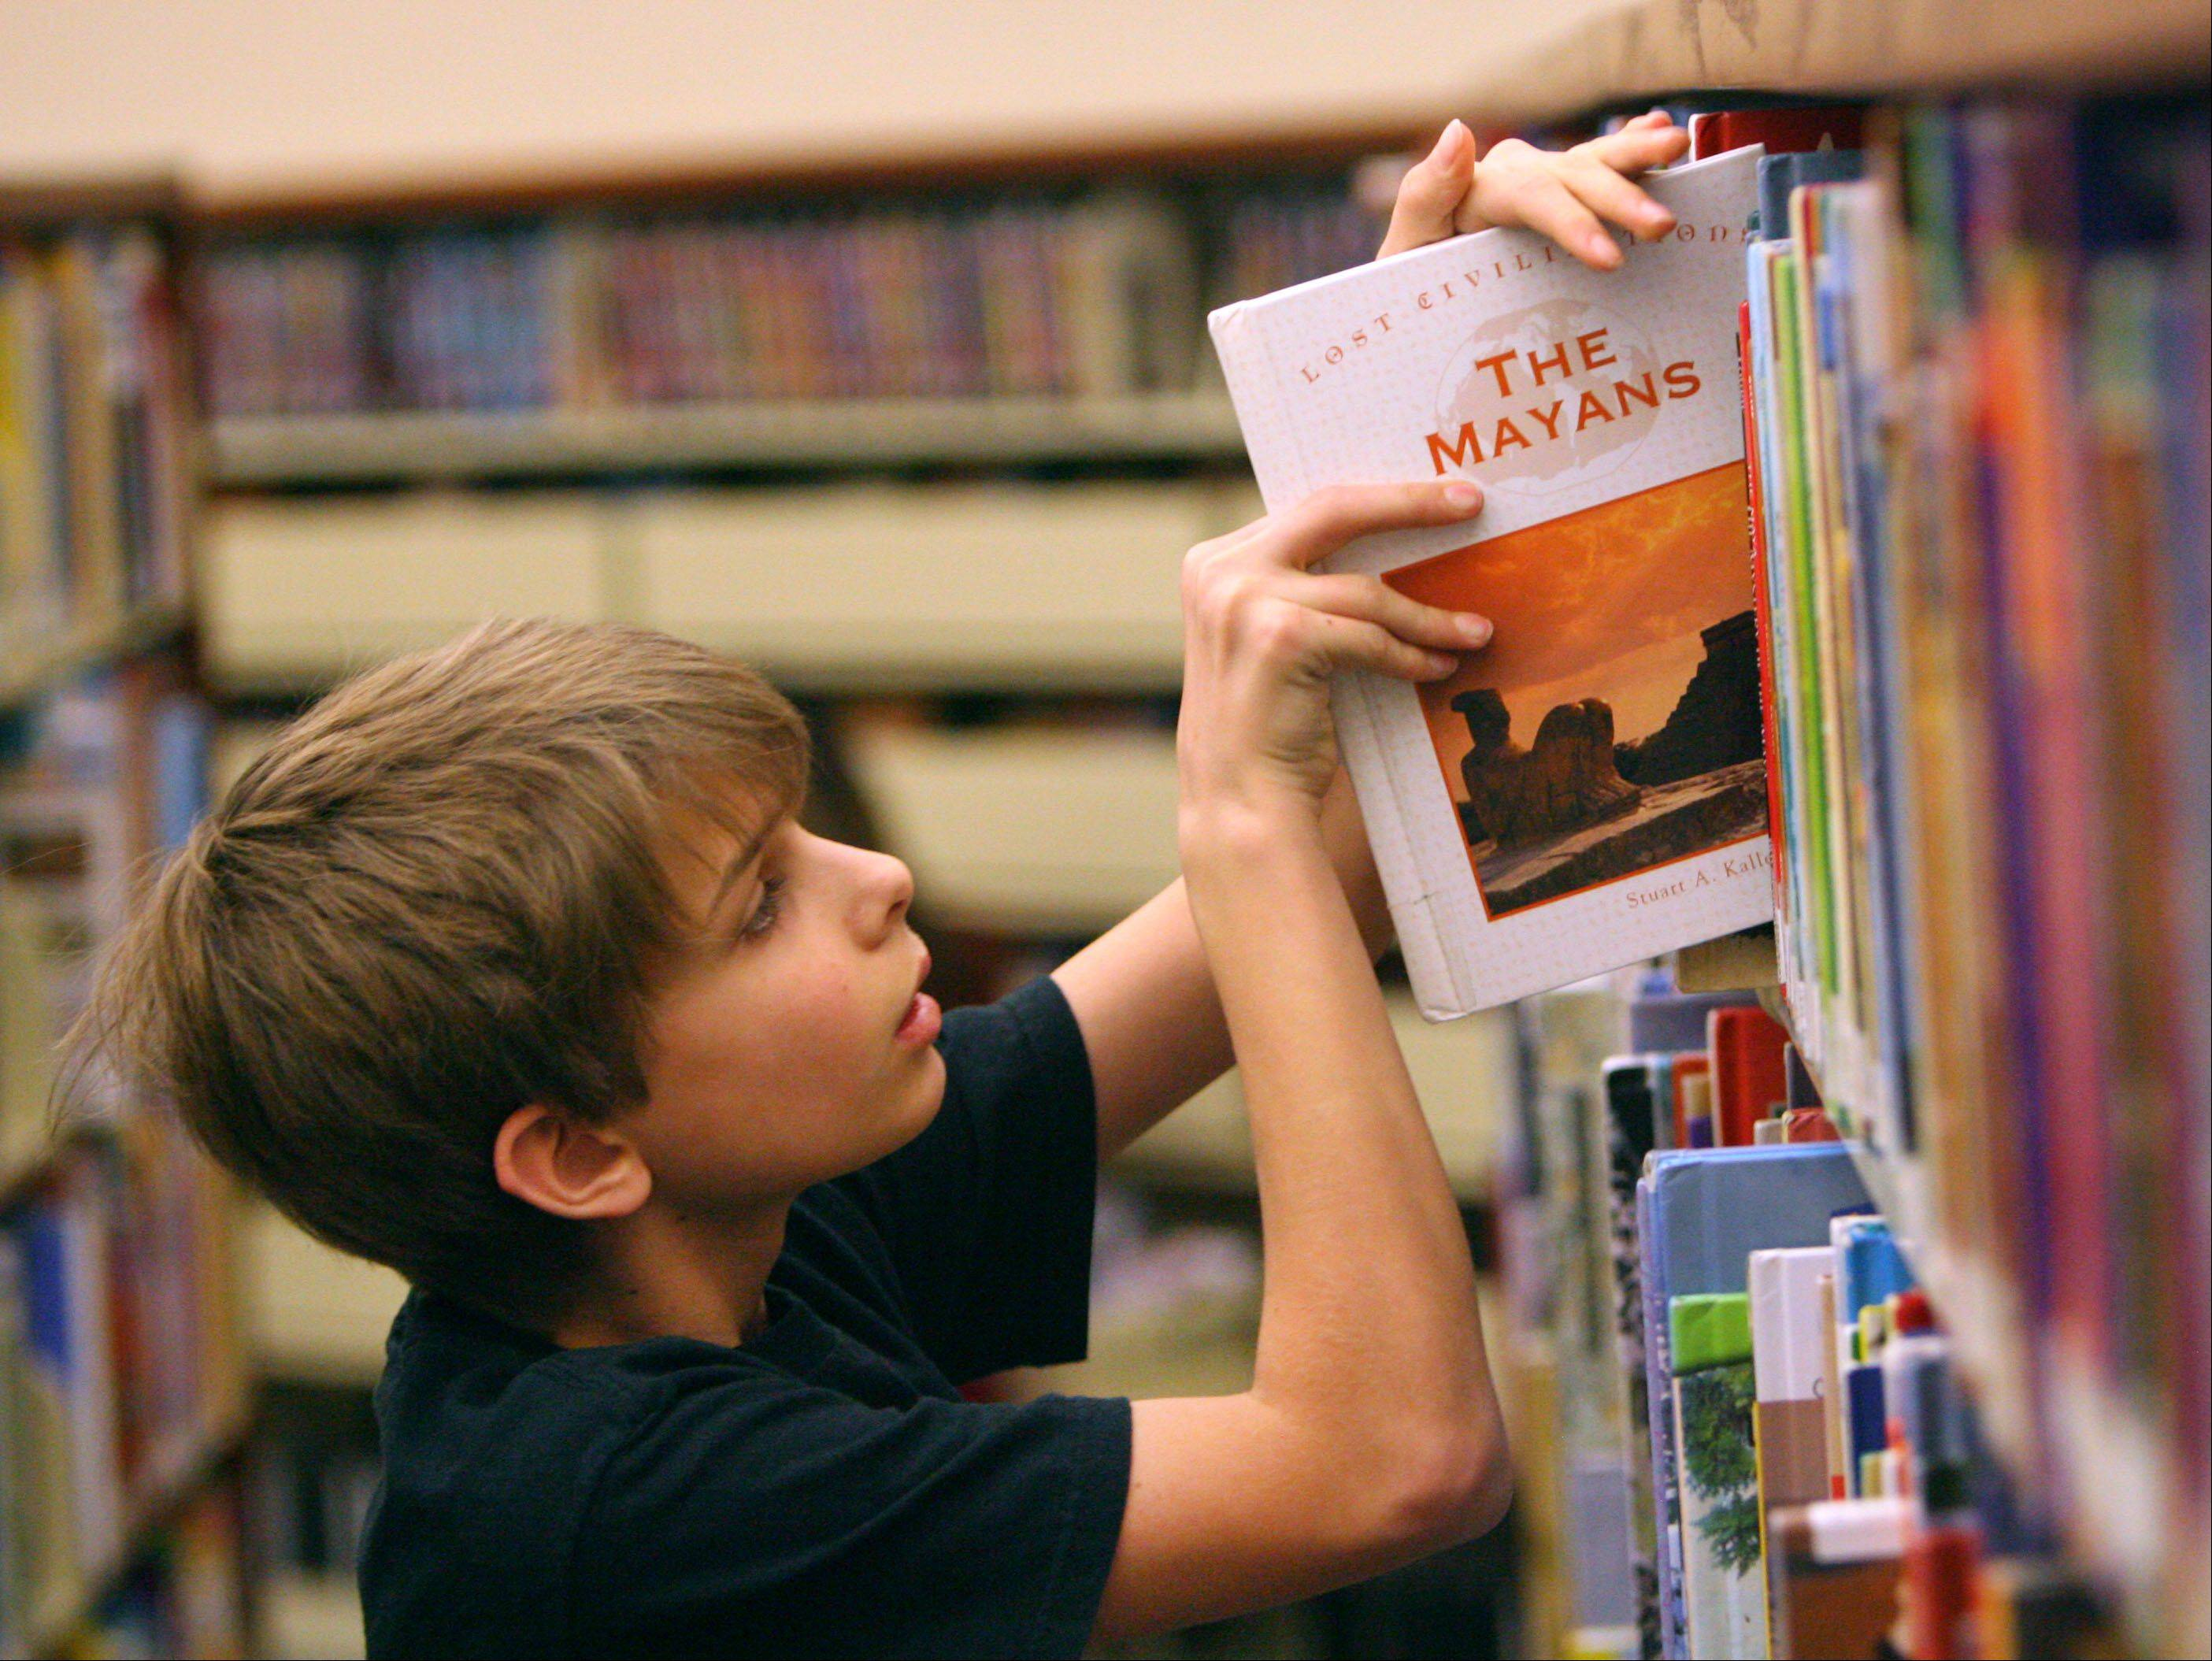 Jared Burgess, 12, of Lindenhurst looks for a book at Lake Villa District Library. From Jan. 2-28, the library will donate $1 to the Lake Villa Township Food Pantry (up to $5 per child) for every hour a child reads.